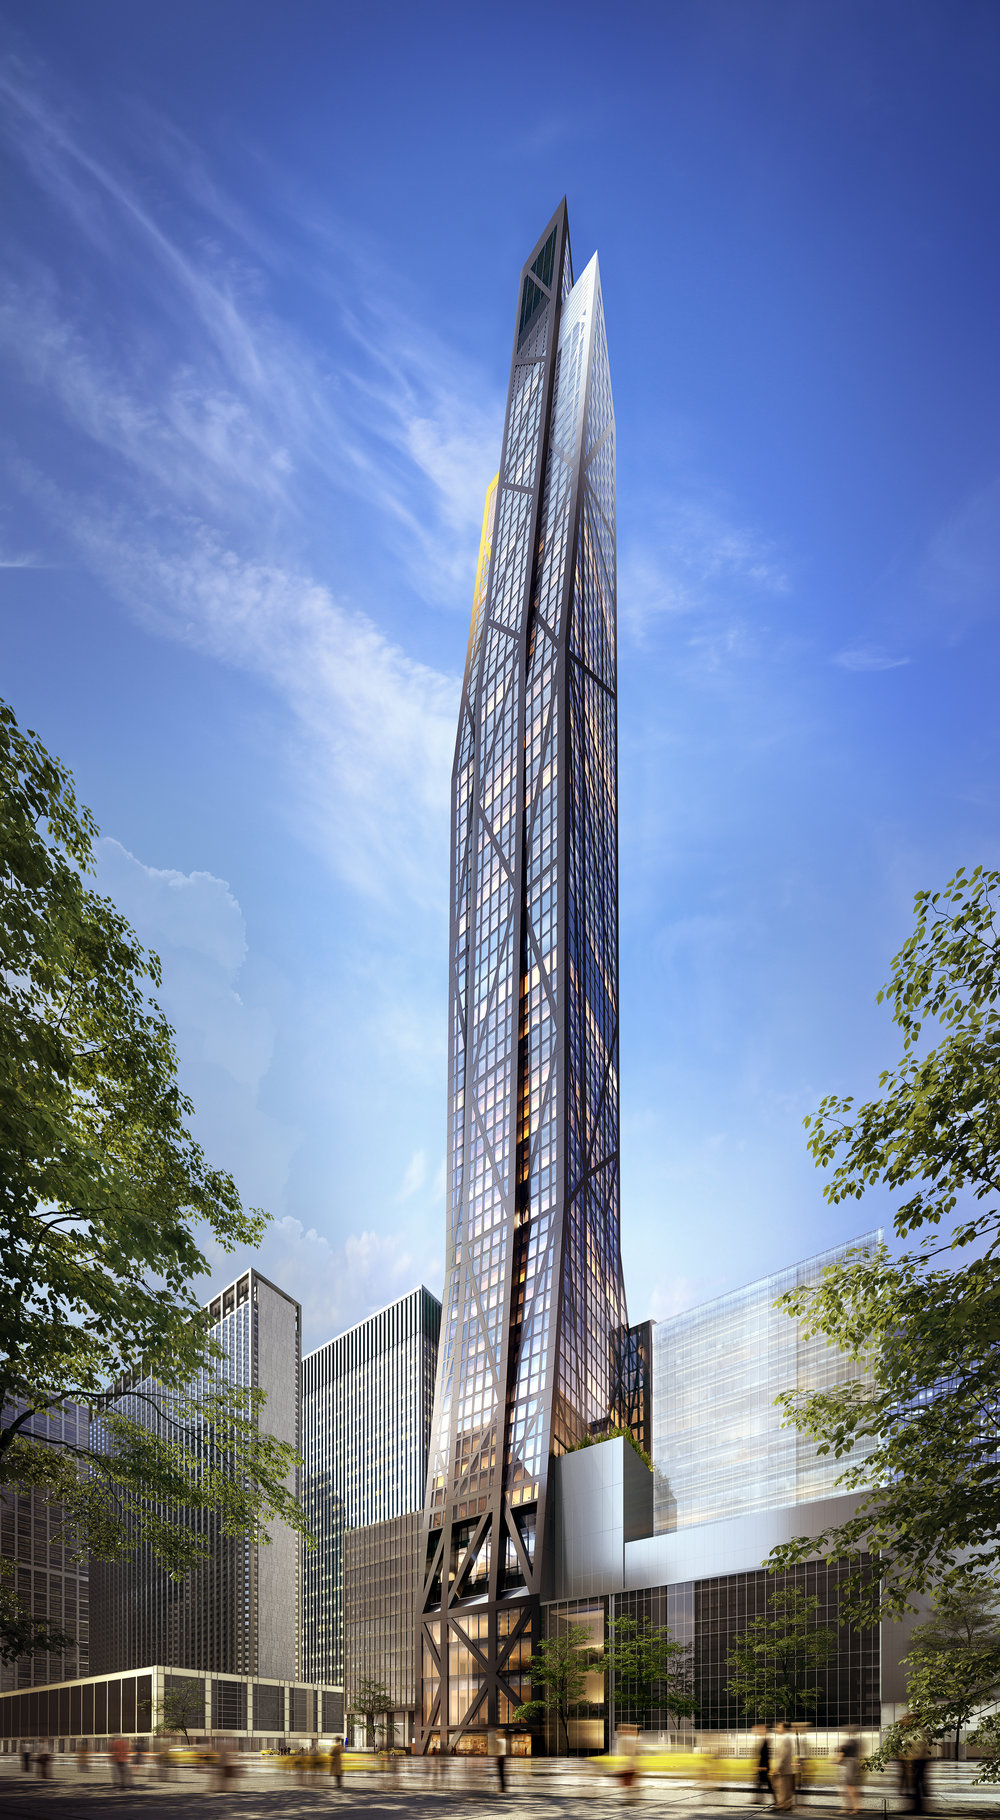 53W53 - Rendering by VUW Studio Construction Update: Check-Out An Exclusive Behind-The-Scenes Look at Construction as 53W53 Reaches the 58th Floor